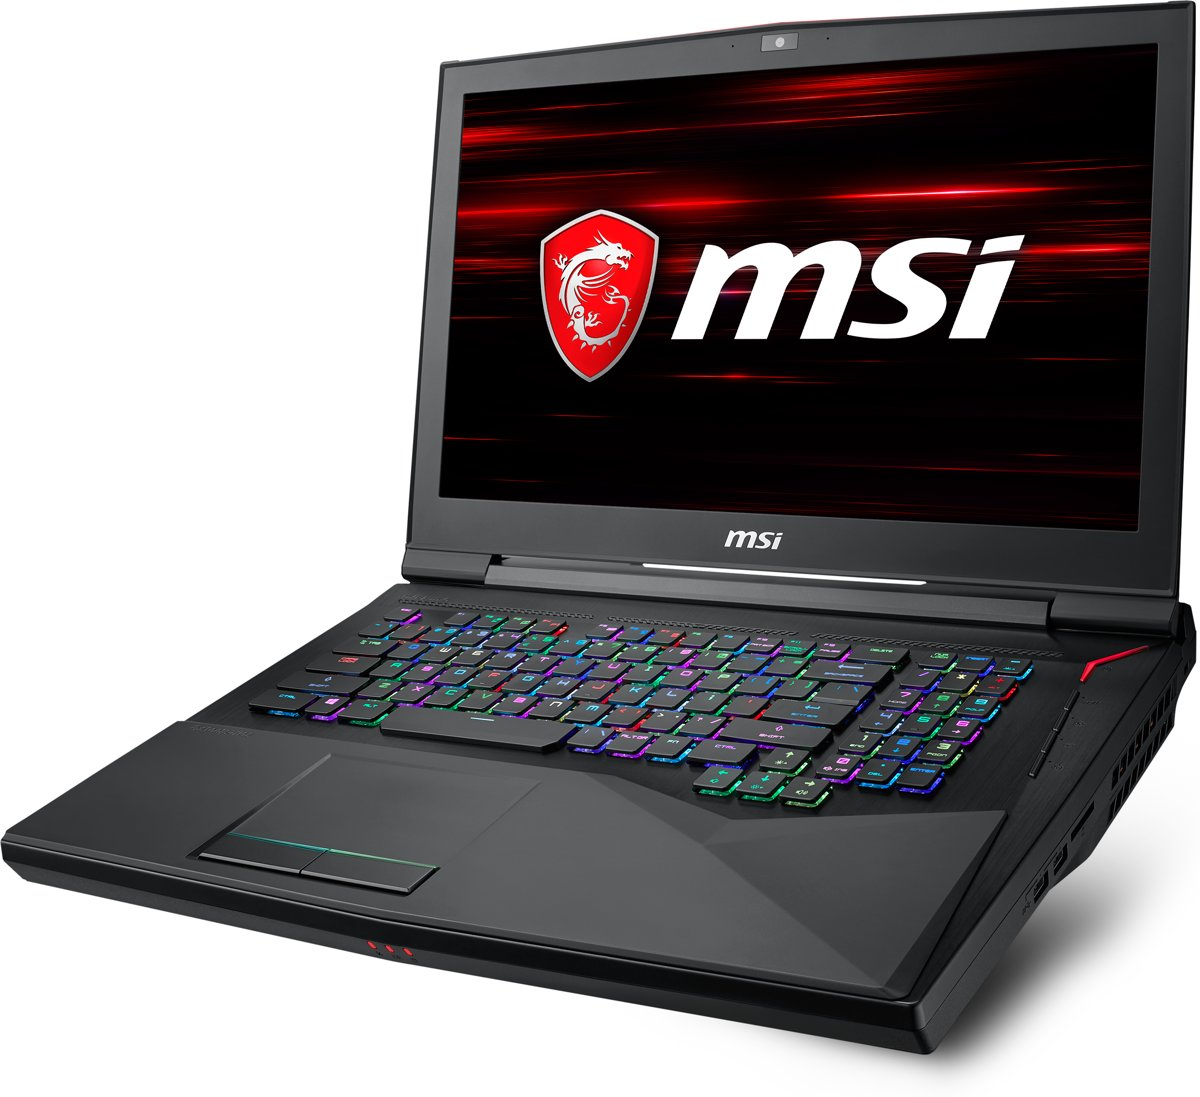 MSI GT75 Titan 8SF-010BE - Gaming Laptop - 17.3 Inch - Azerty